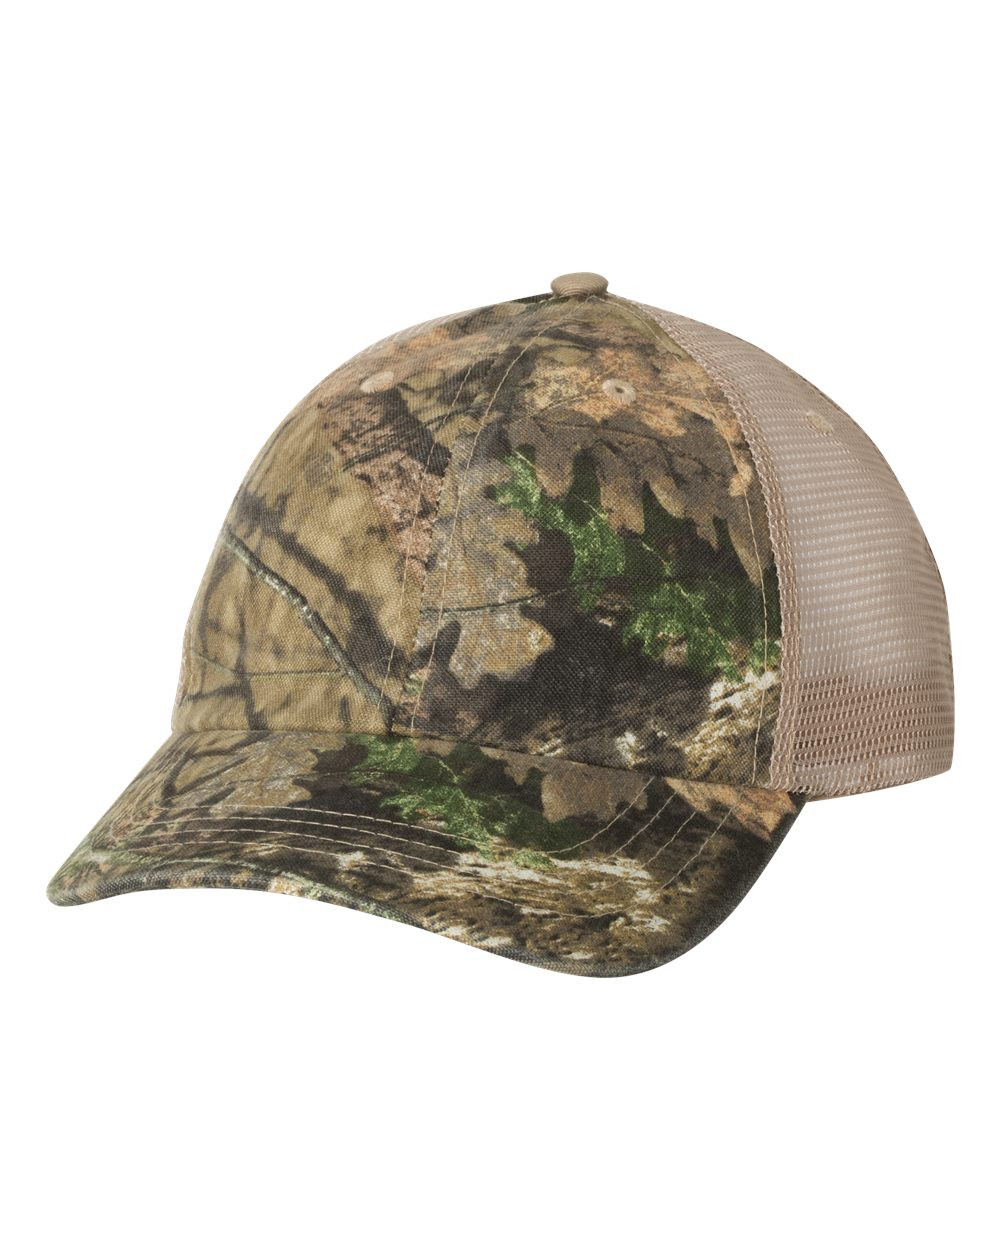 Kati LC101V - Unstructured Washed Mesh Cap